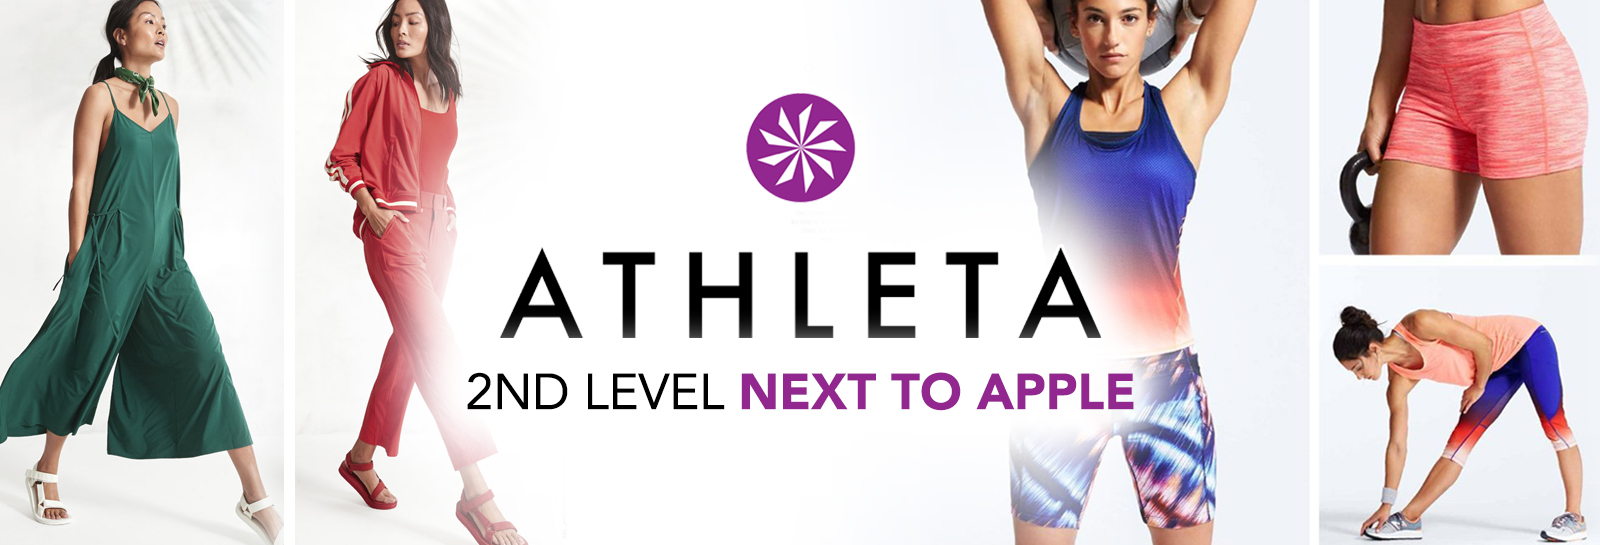 2019 08 15 athleta slider